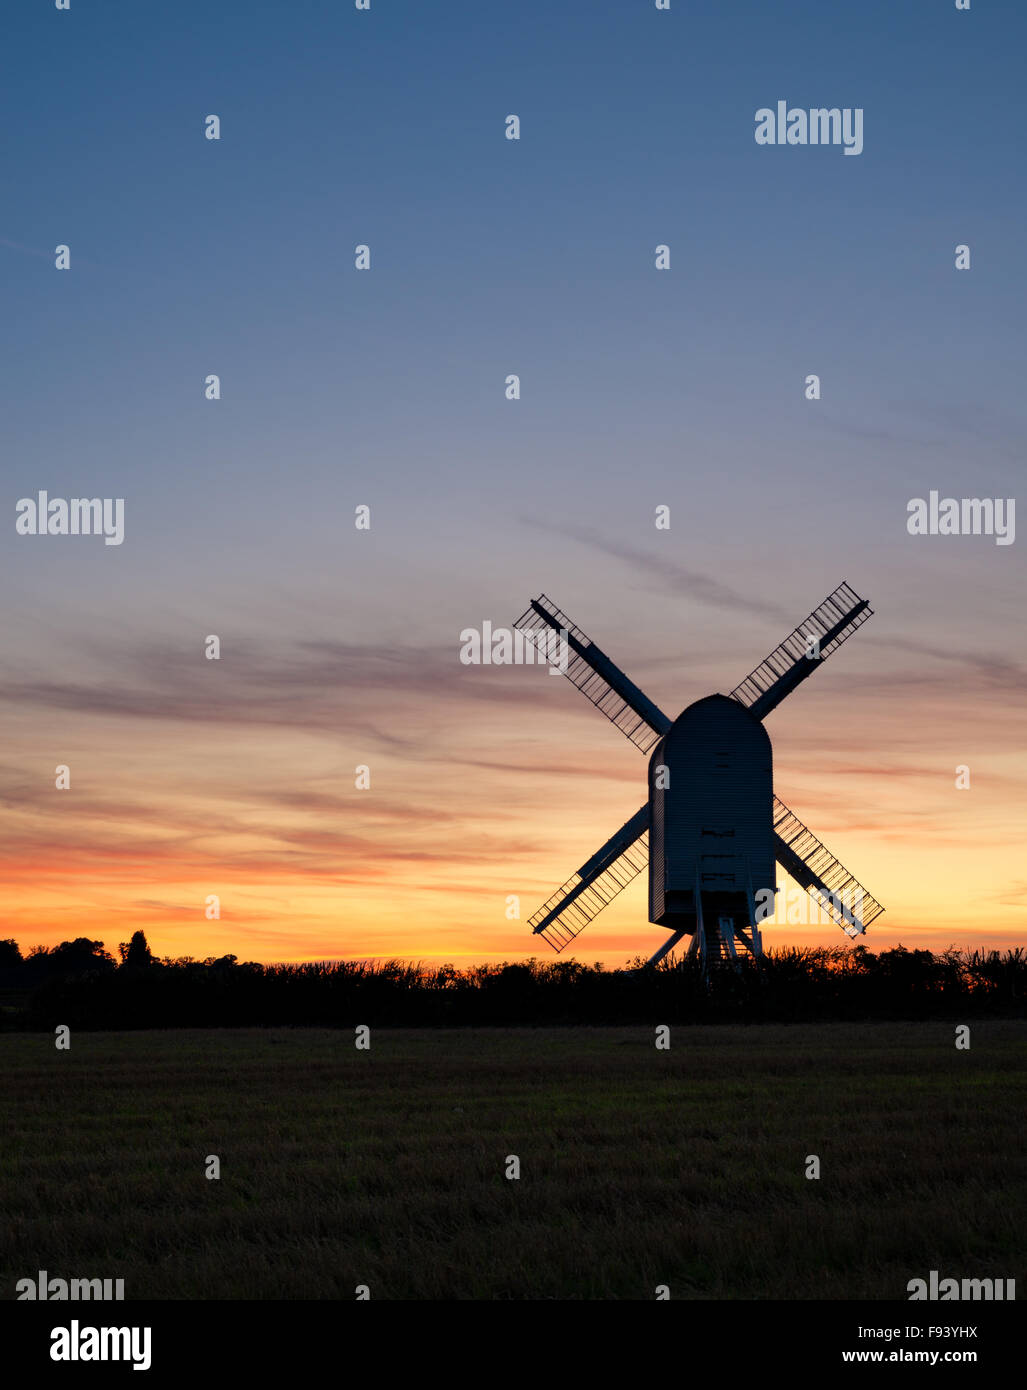 Chillenden Windmill in the Kent countryside, silhouetted at sunset. - Stock Image